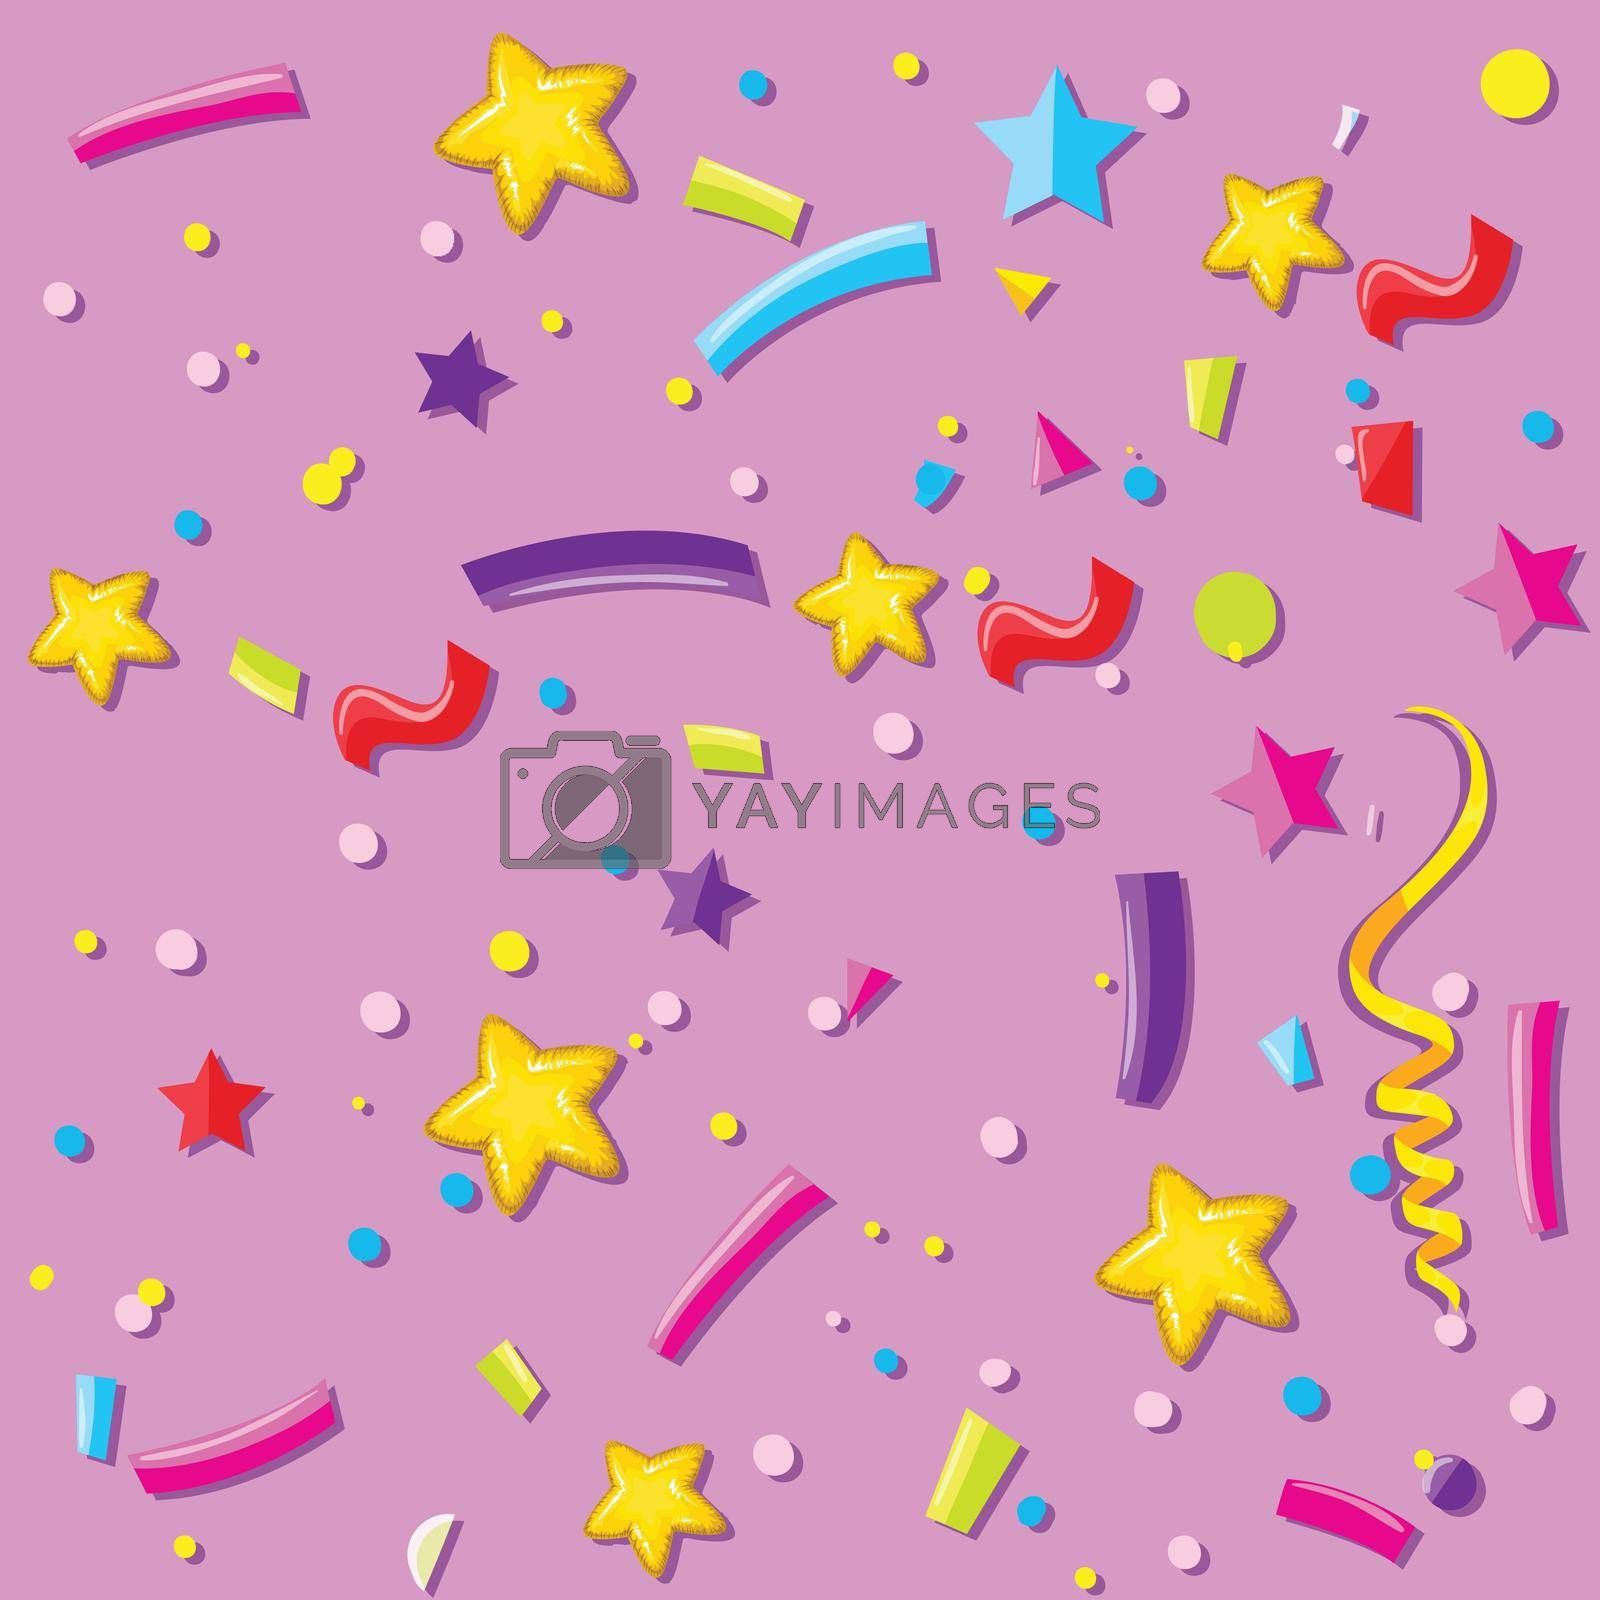 Royalty free image of A party celebration background by iimages